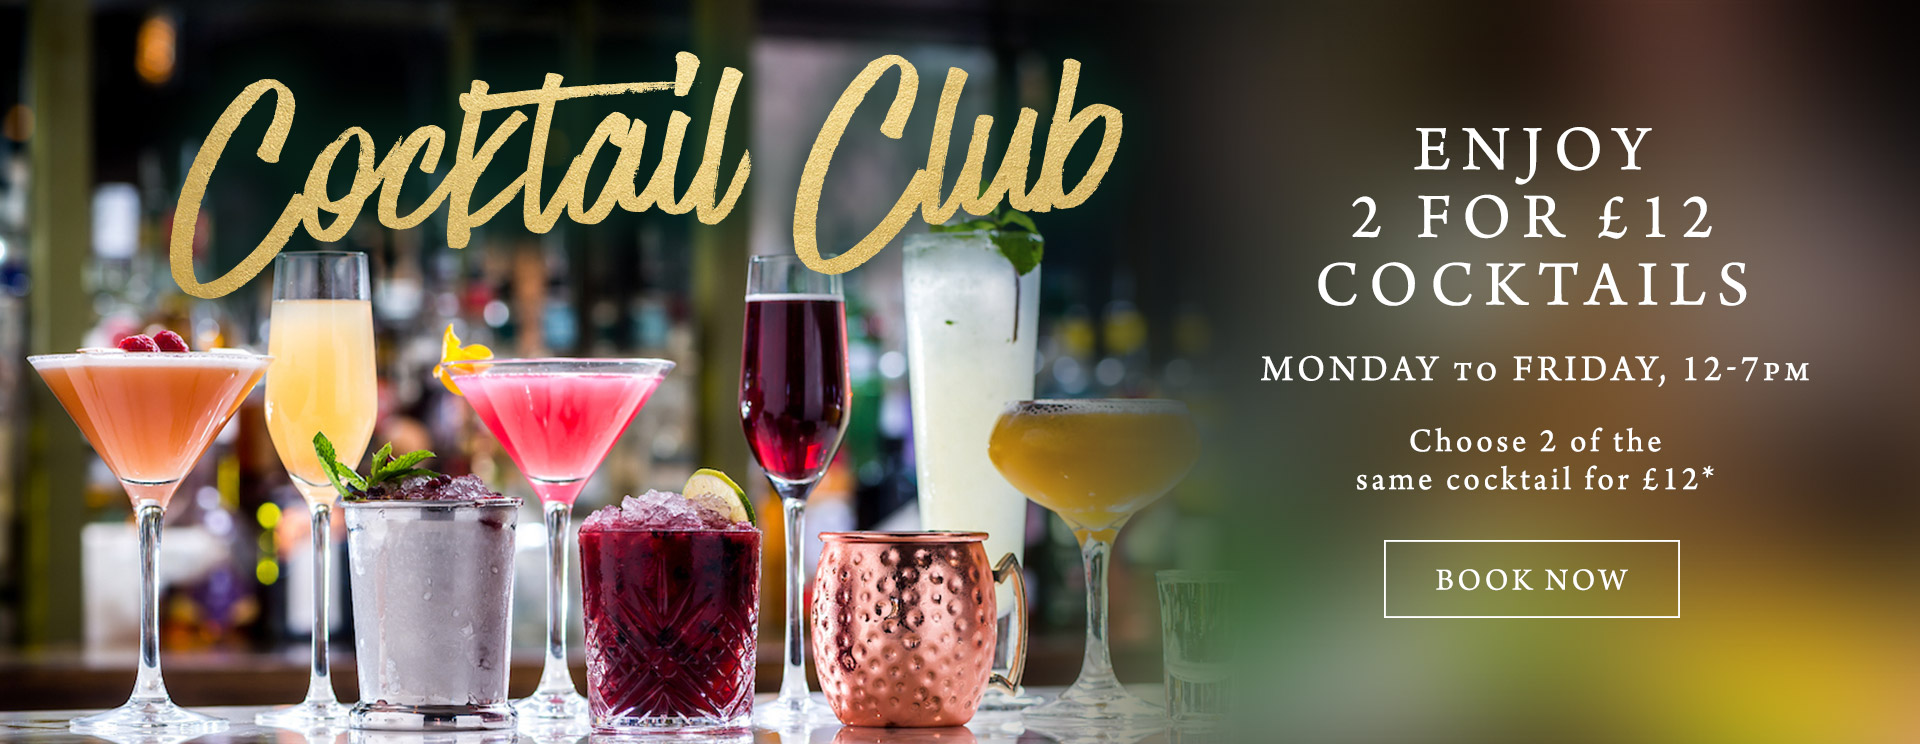 2 for £12 cocktails at The Rams Head